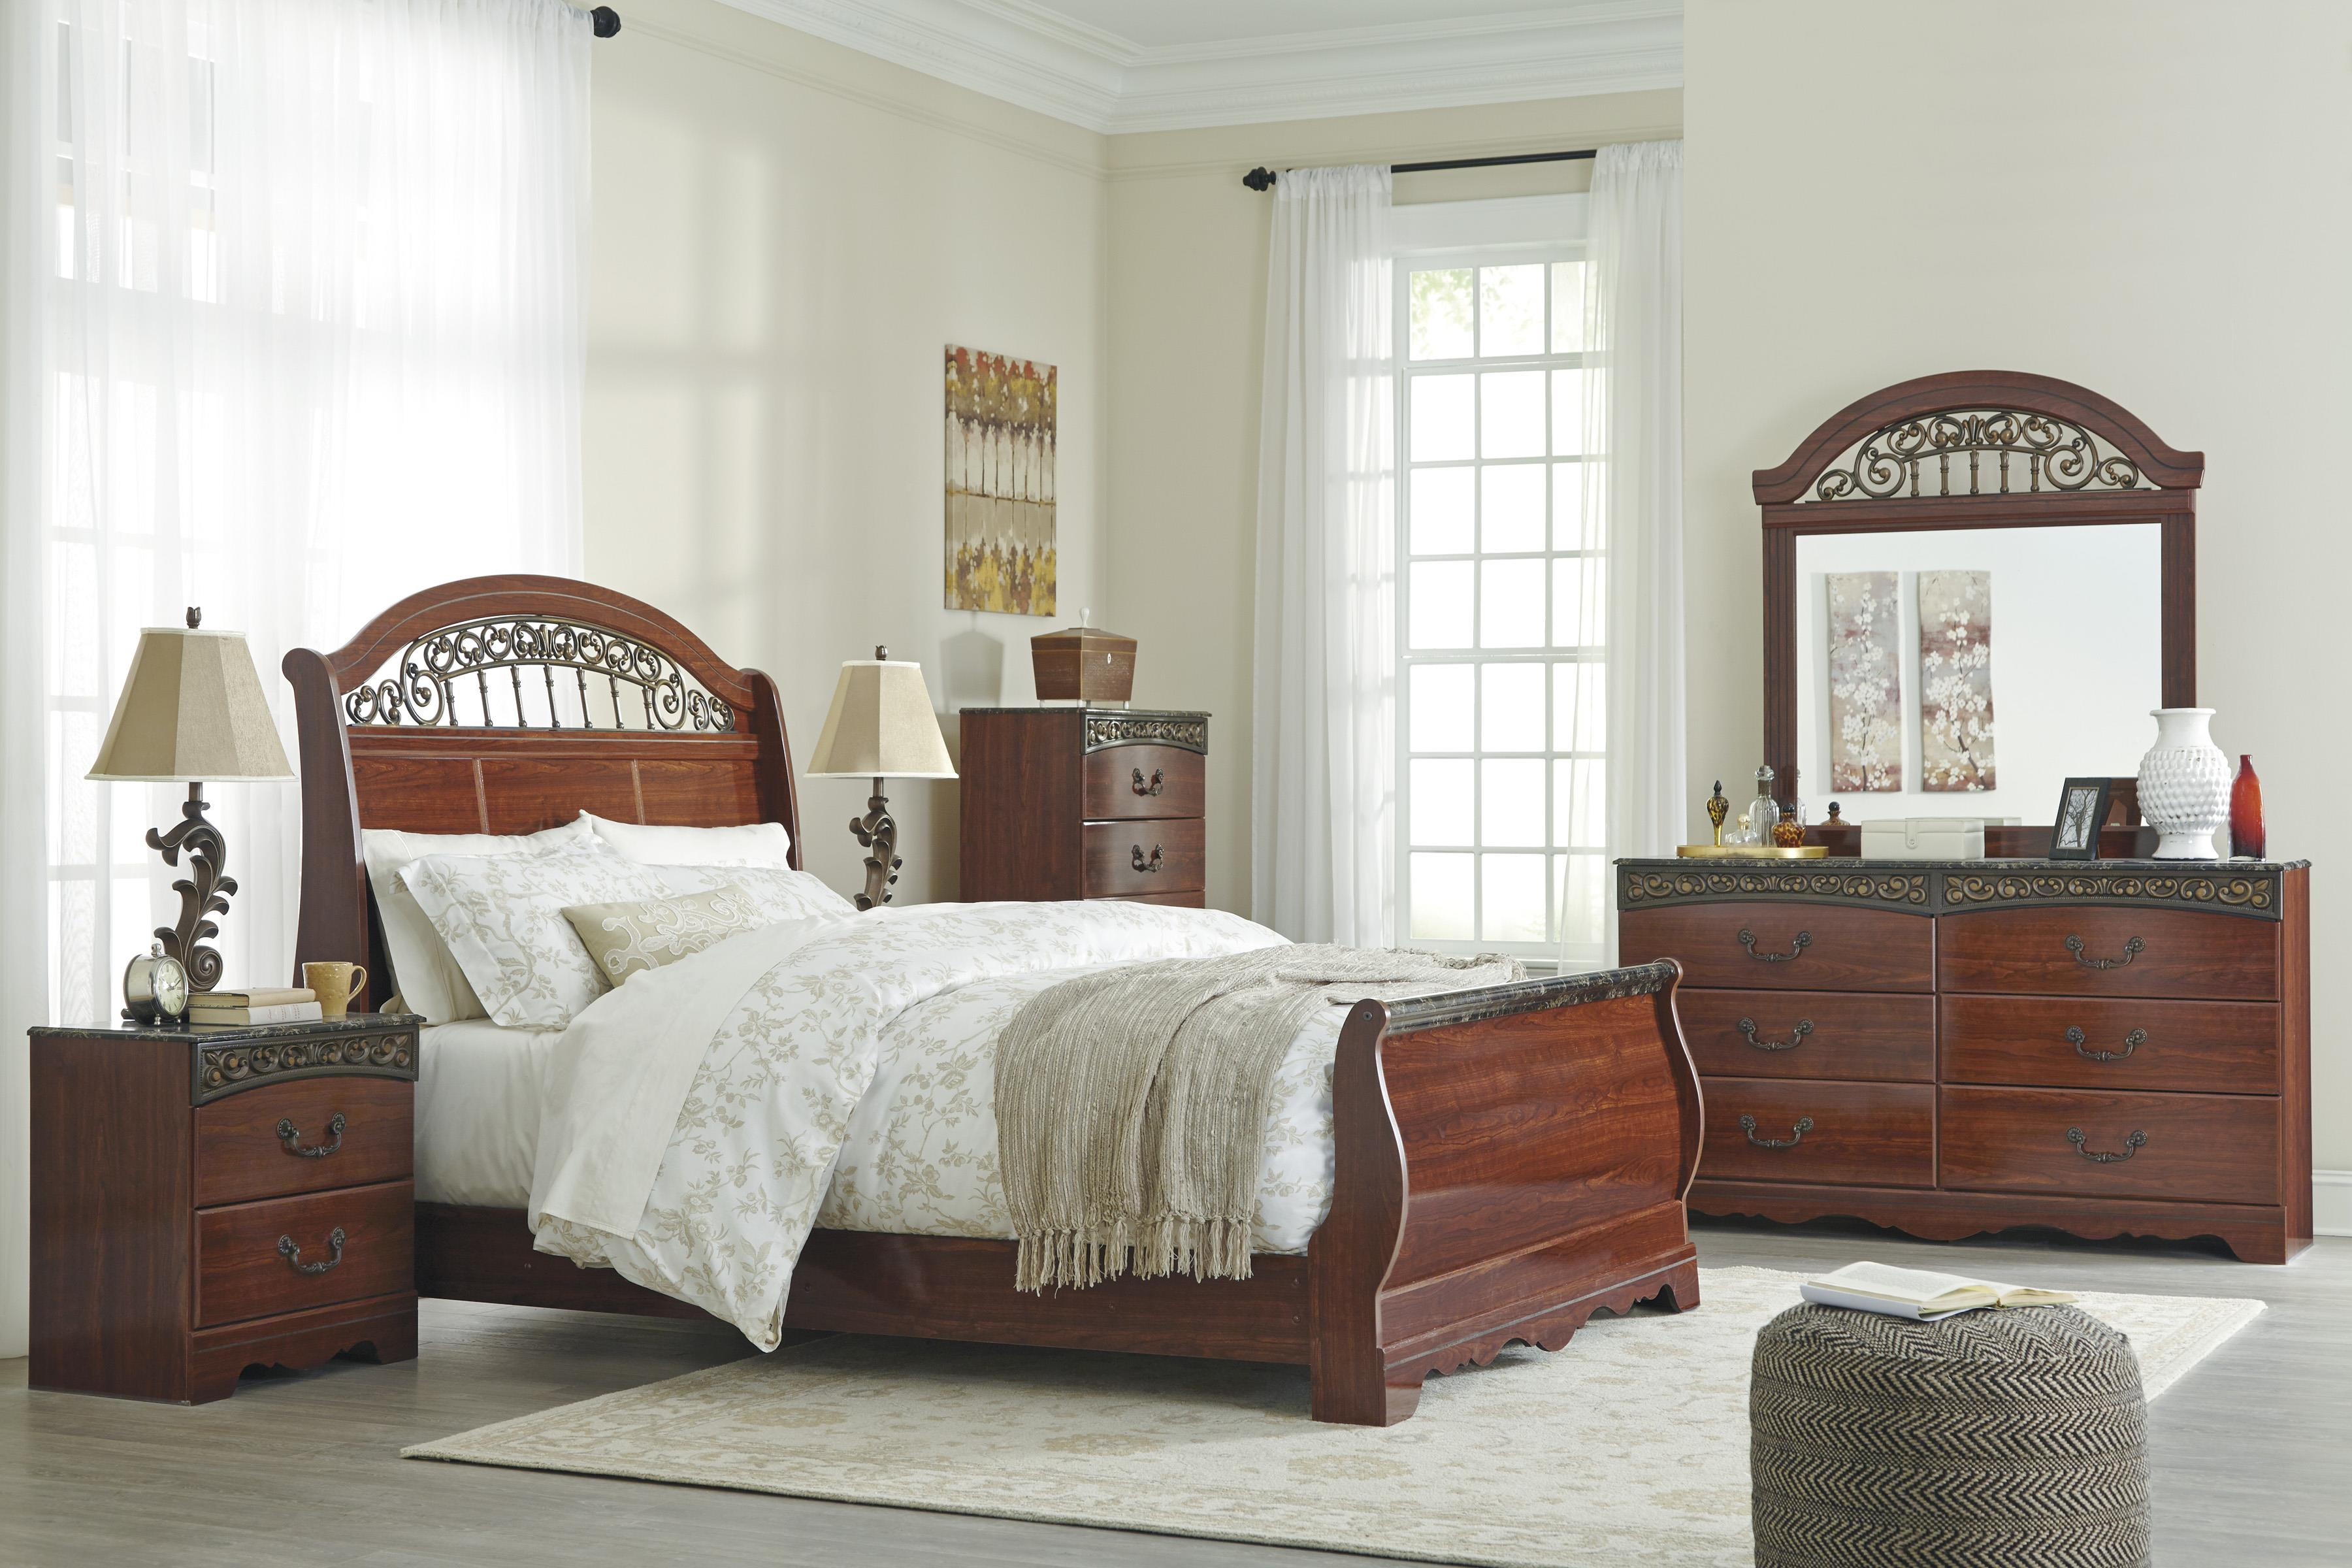 Signature Design by Ashley Brookfield Queen Bedroom Group - Item Number: B105 Q Bedroom Group 6